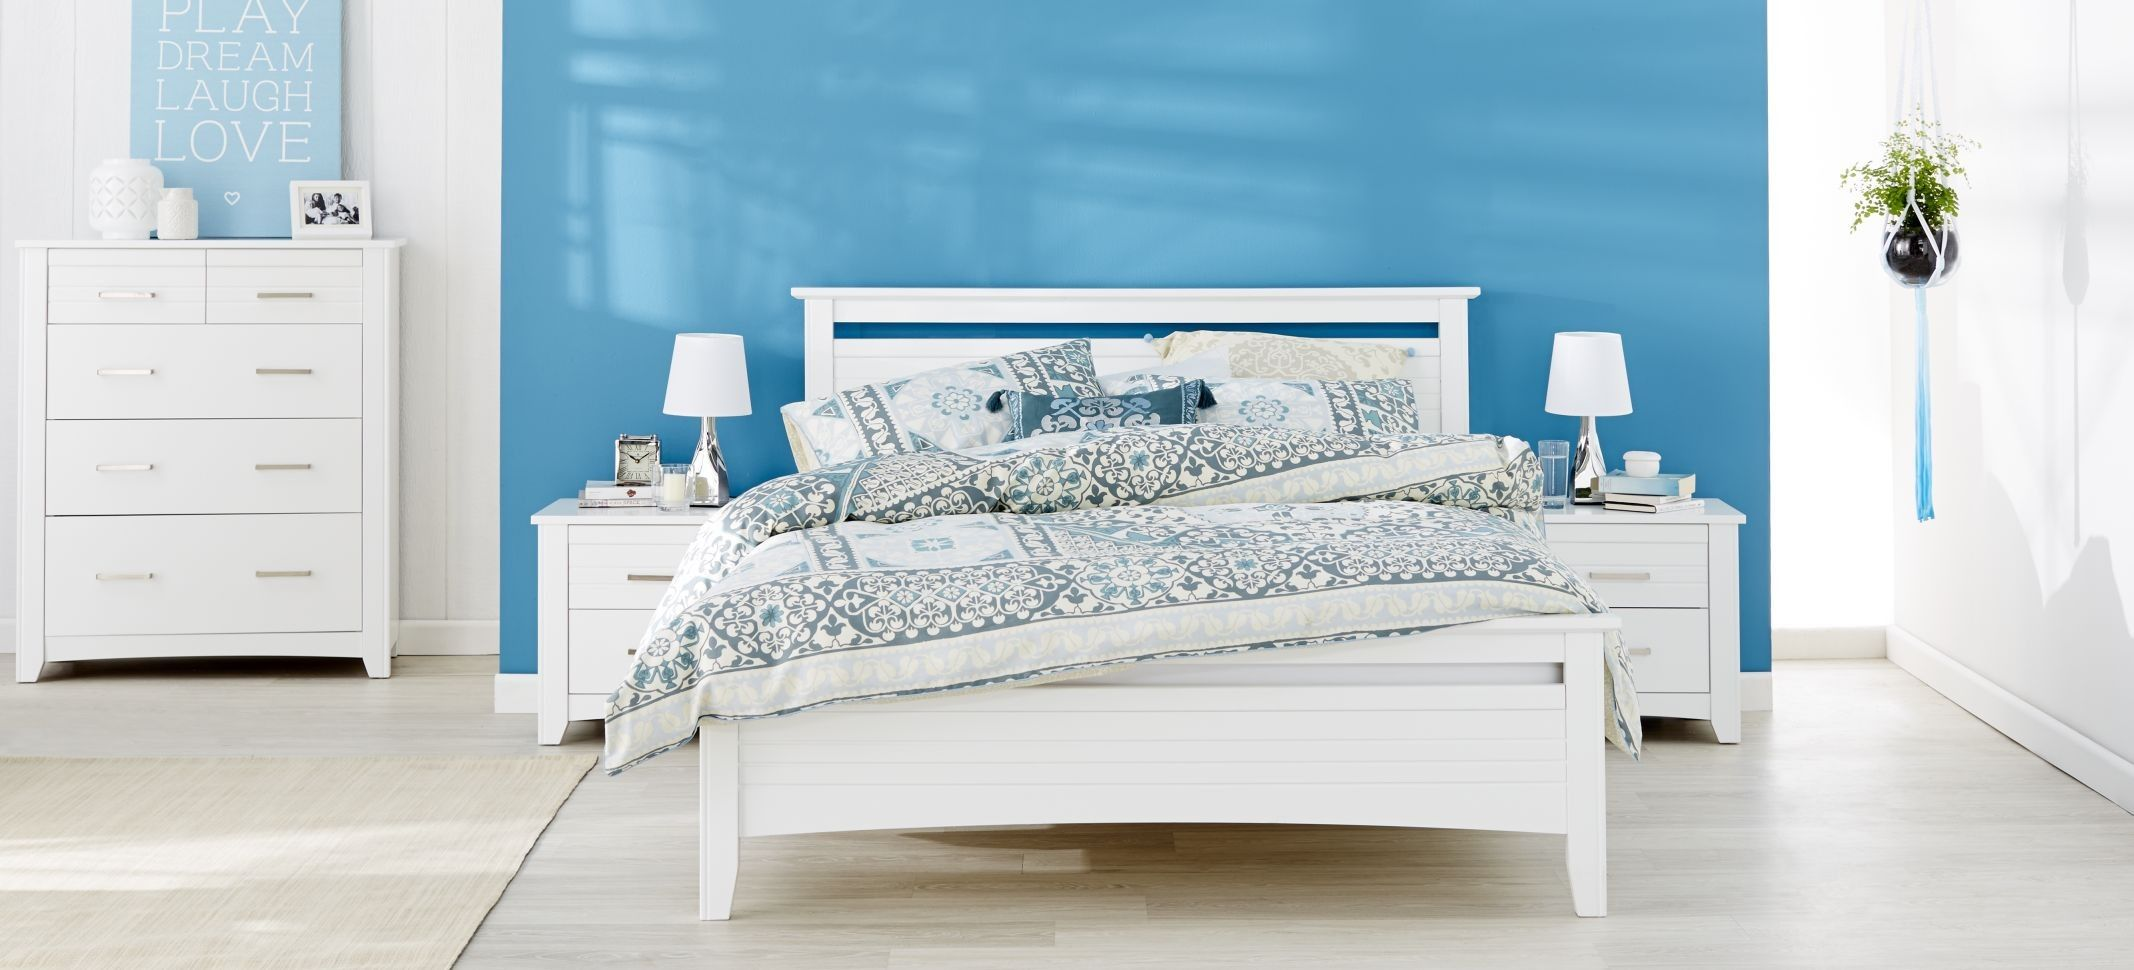 Forty Winks Kriss Clean White Wooden Bedroom Furniture Suite With Blue And Patterned Linen